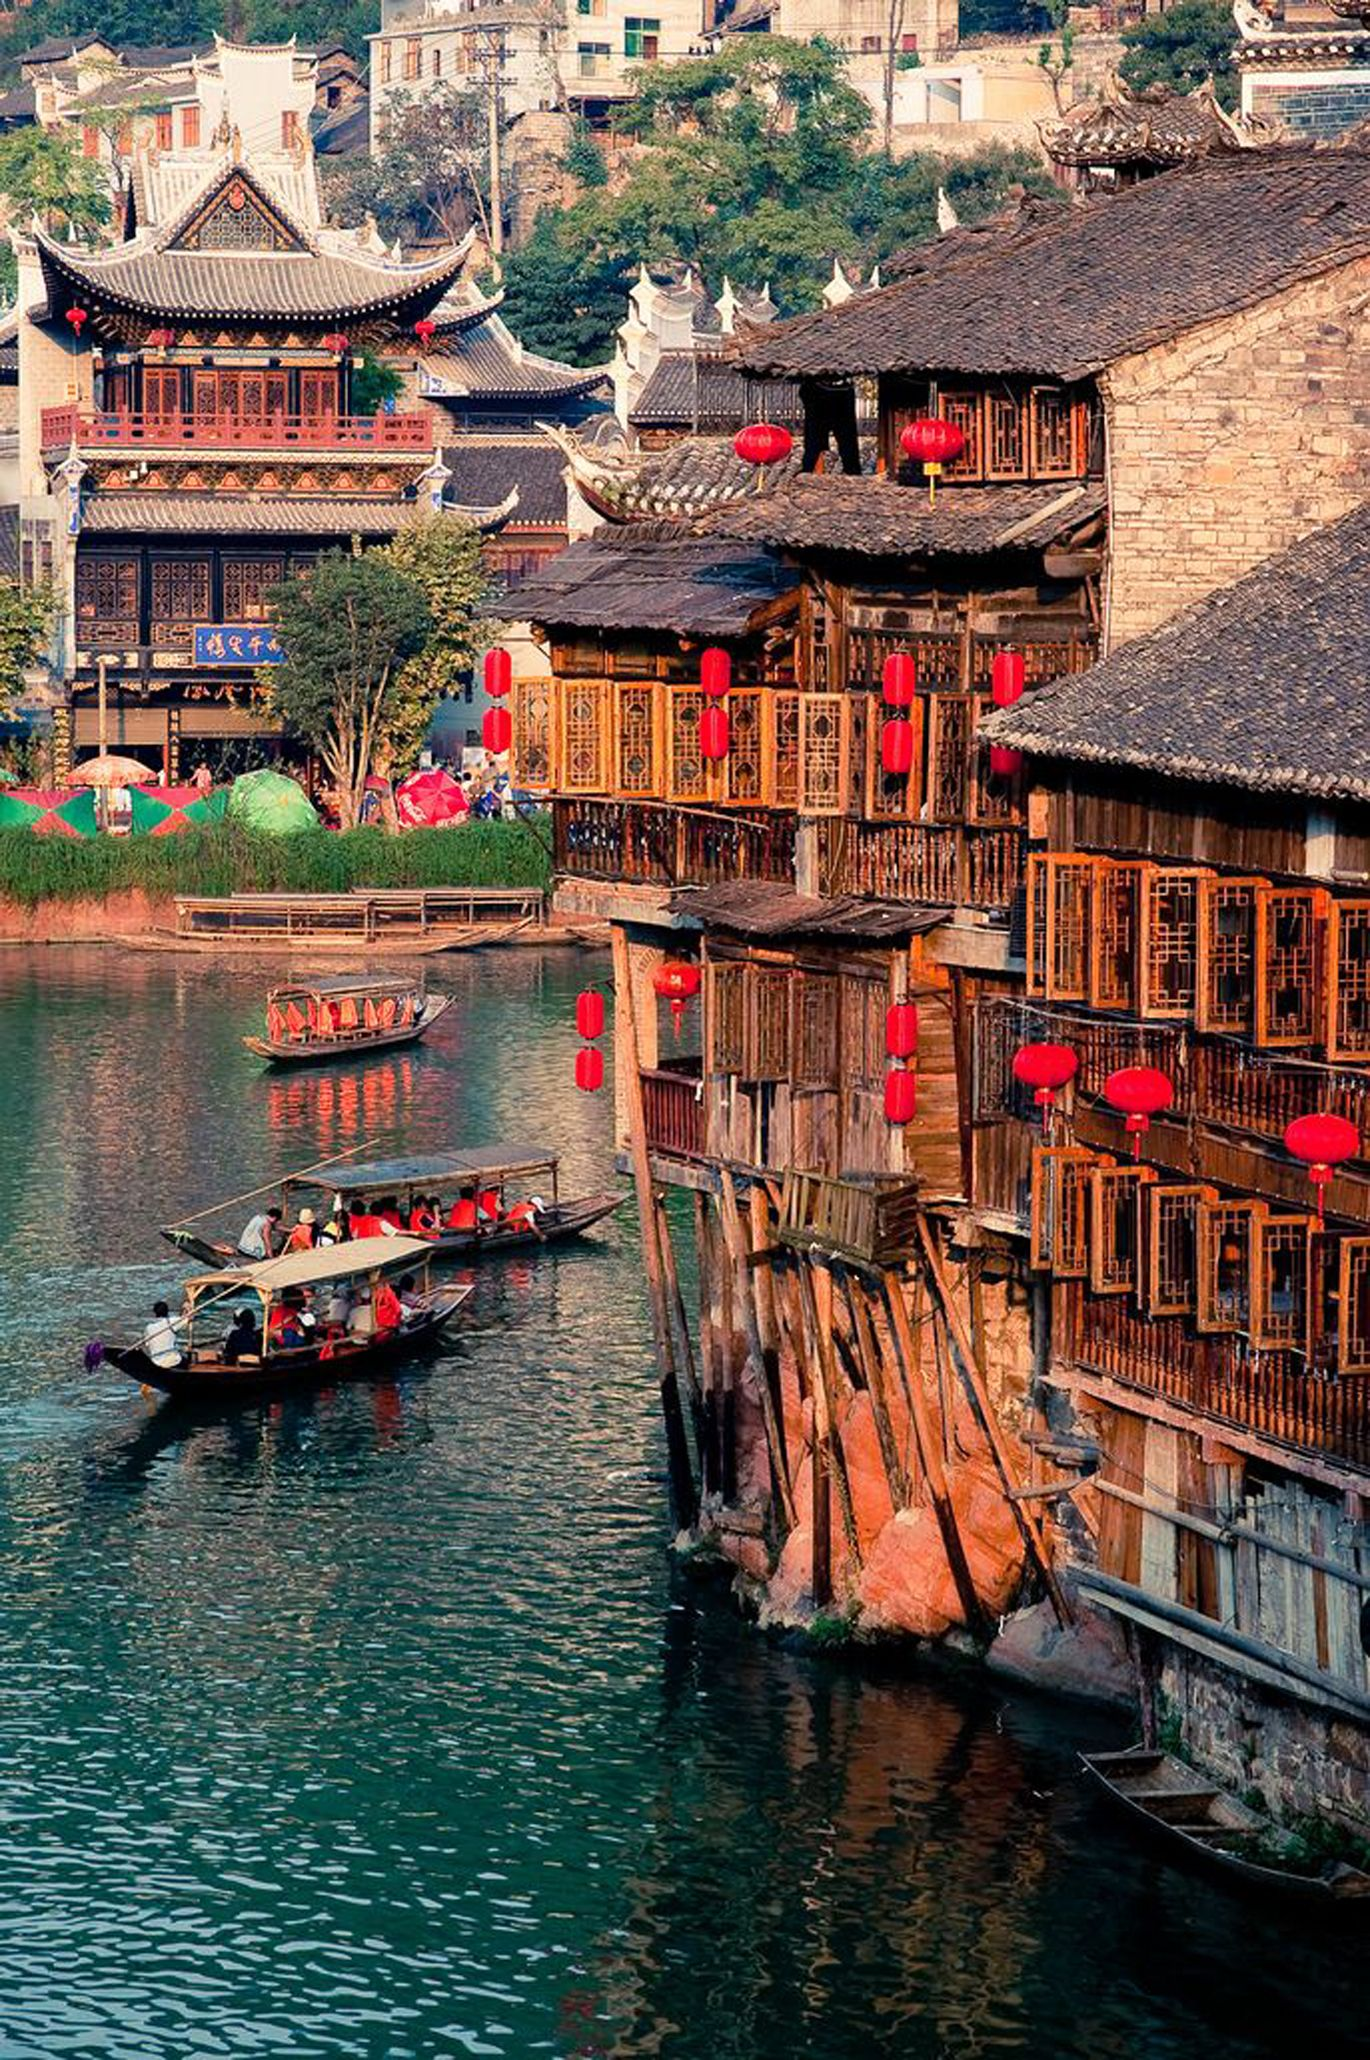 fenghuang county hunan china is an exceptionally well preserved rh pinterest com